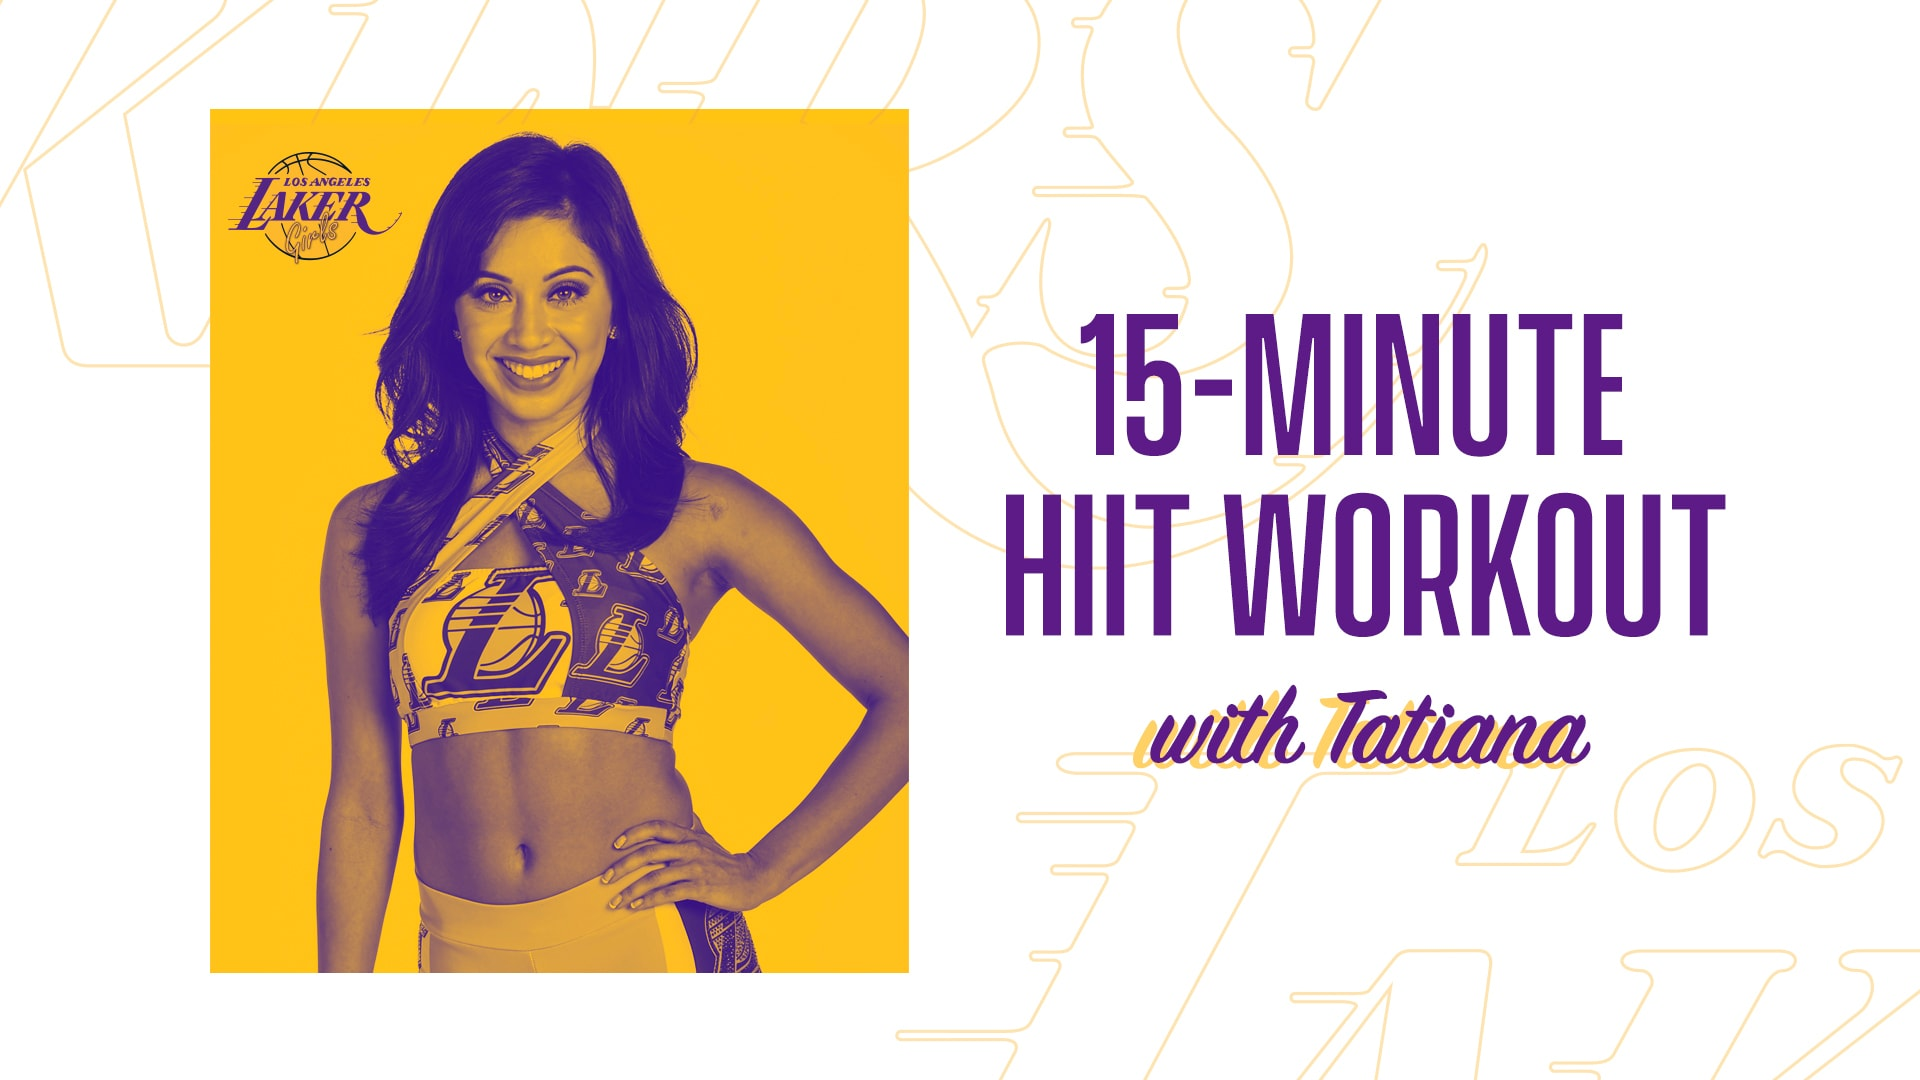 15-Minute HIIT Workout with Tatiana